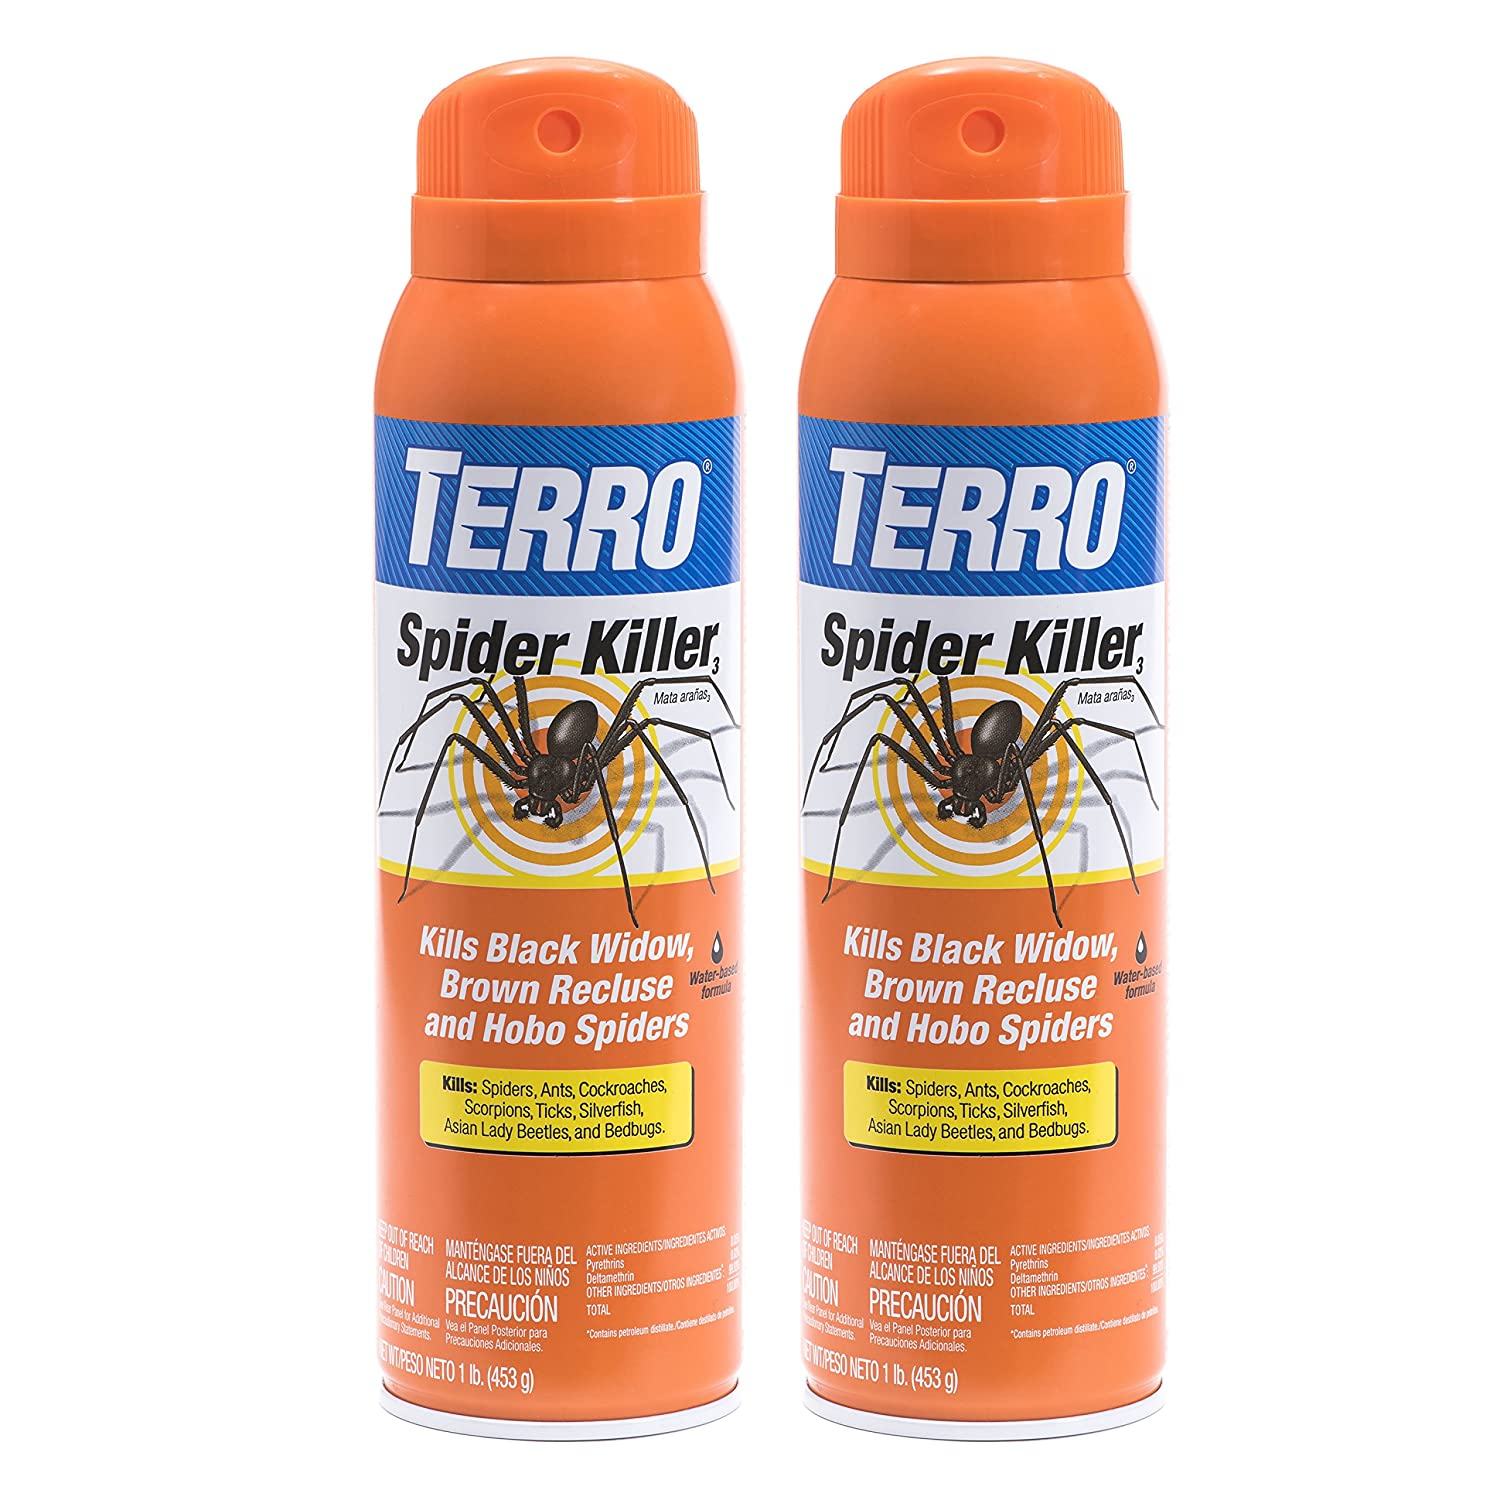 Amazon.com : TERRO T2302 Spider Killer Aerosol Spray : Home Pest Control Sprayers : Garden & Outdoor